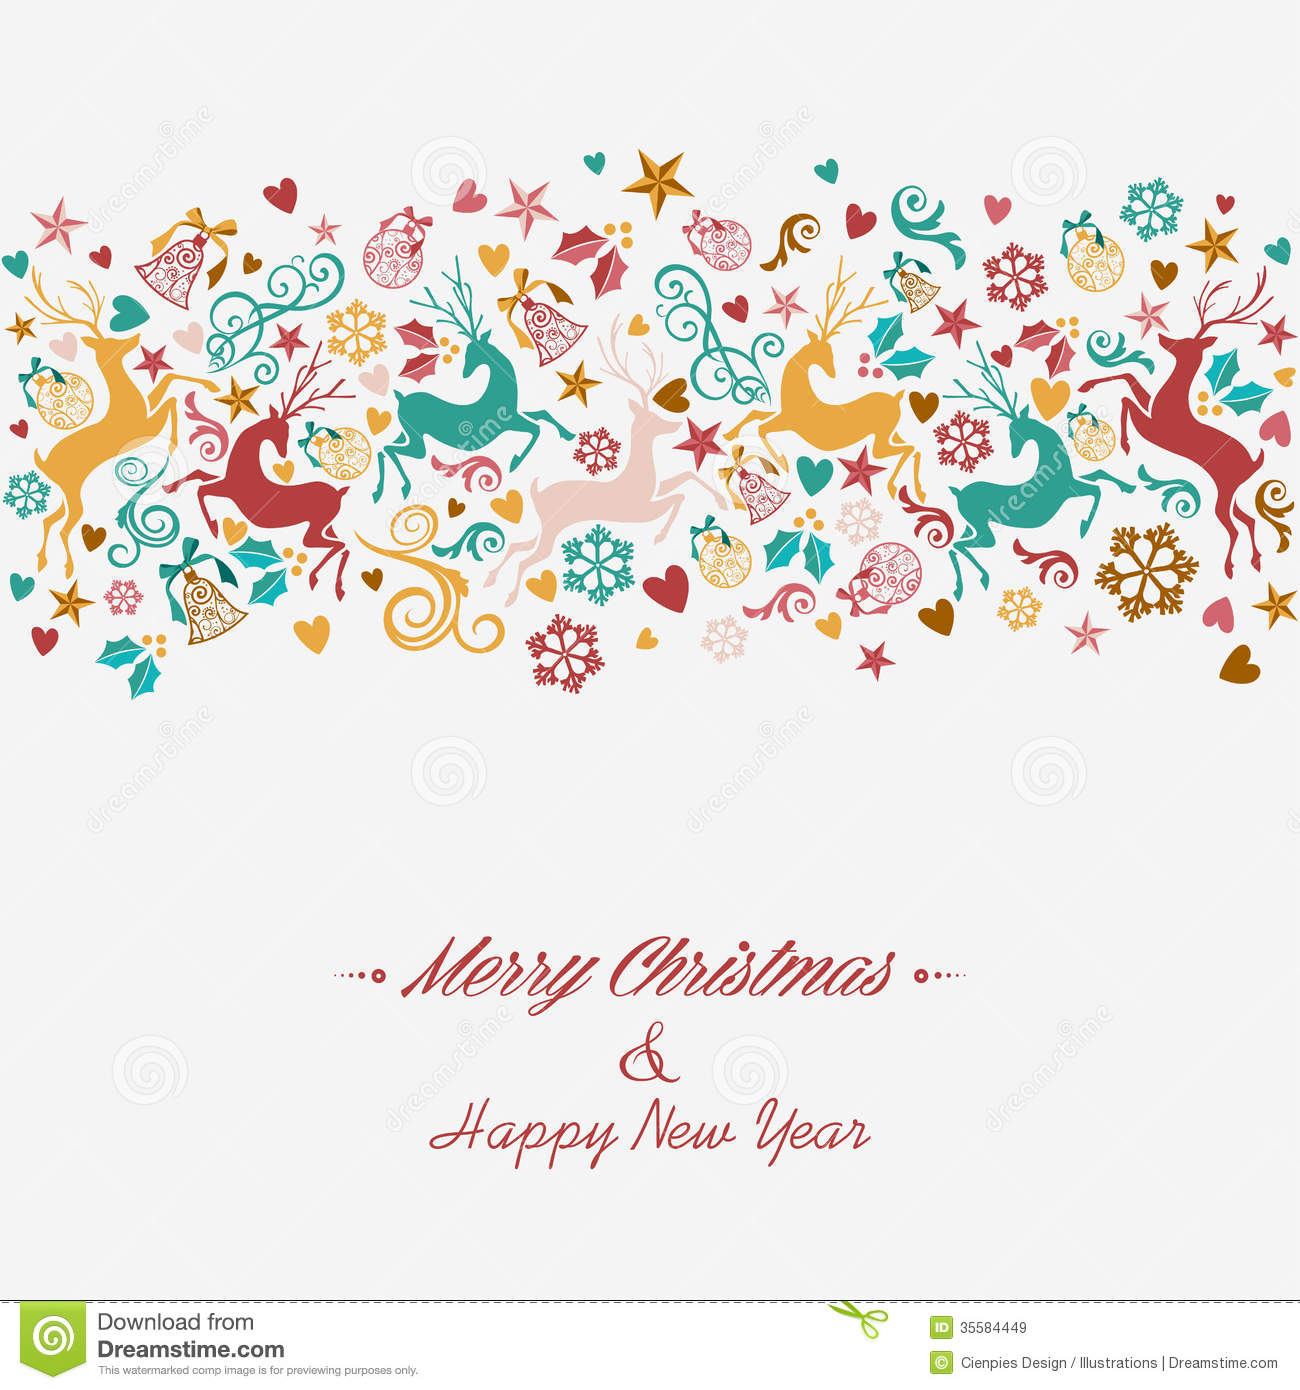 merry christmas and happy new year greeting card royalty free illustration